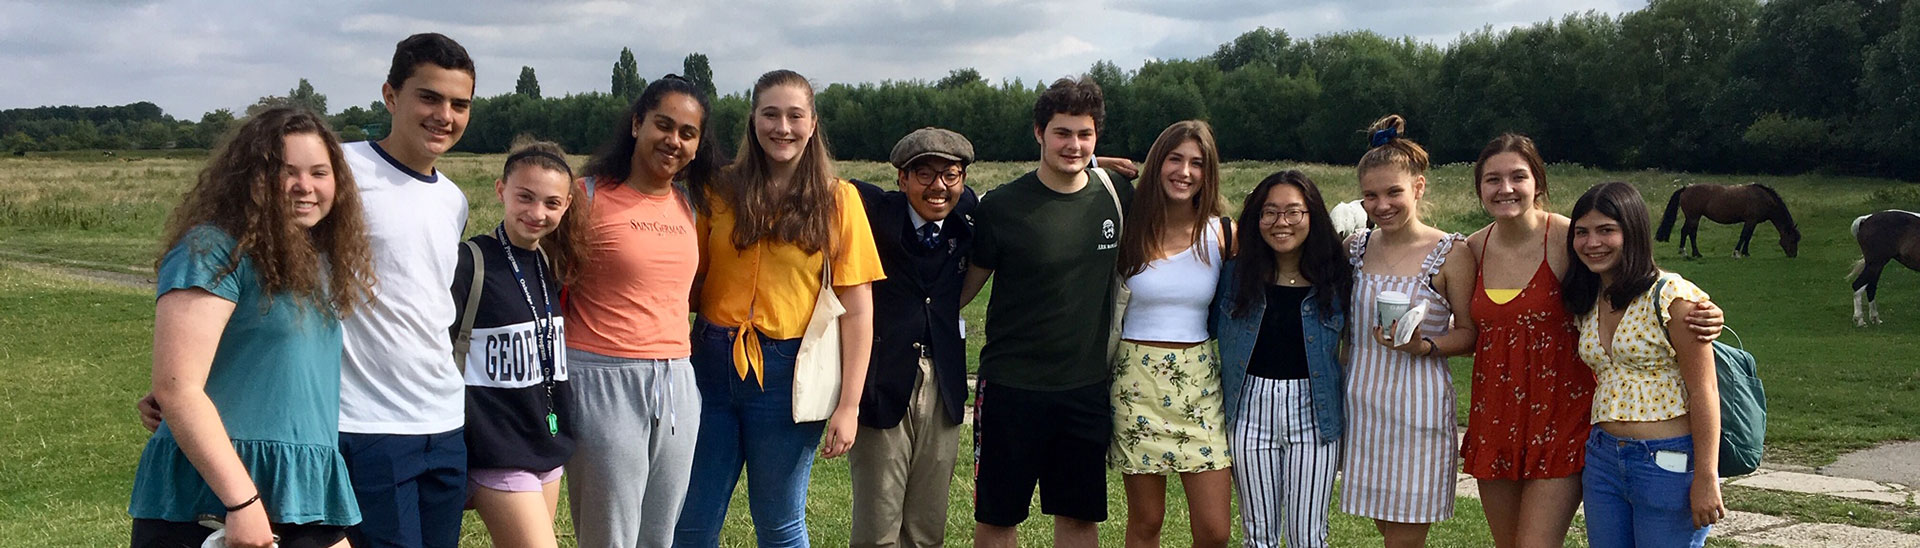 Oxbridge students celebrate academic success with an outing to the green pastures of Oxford